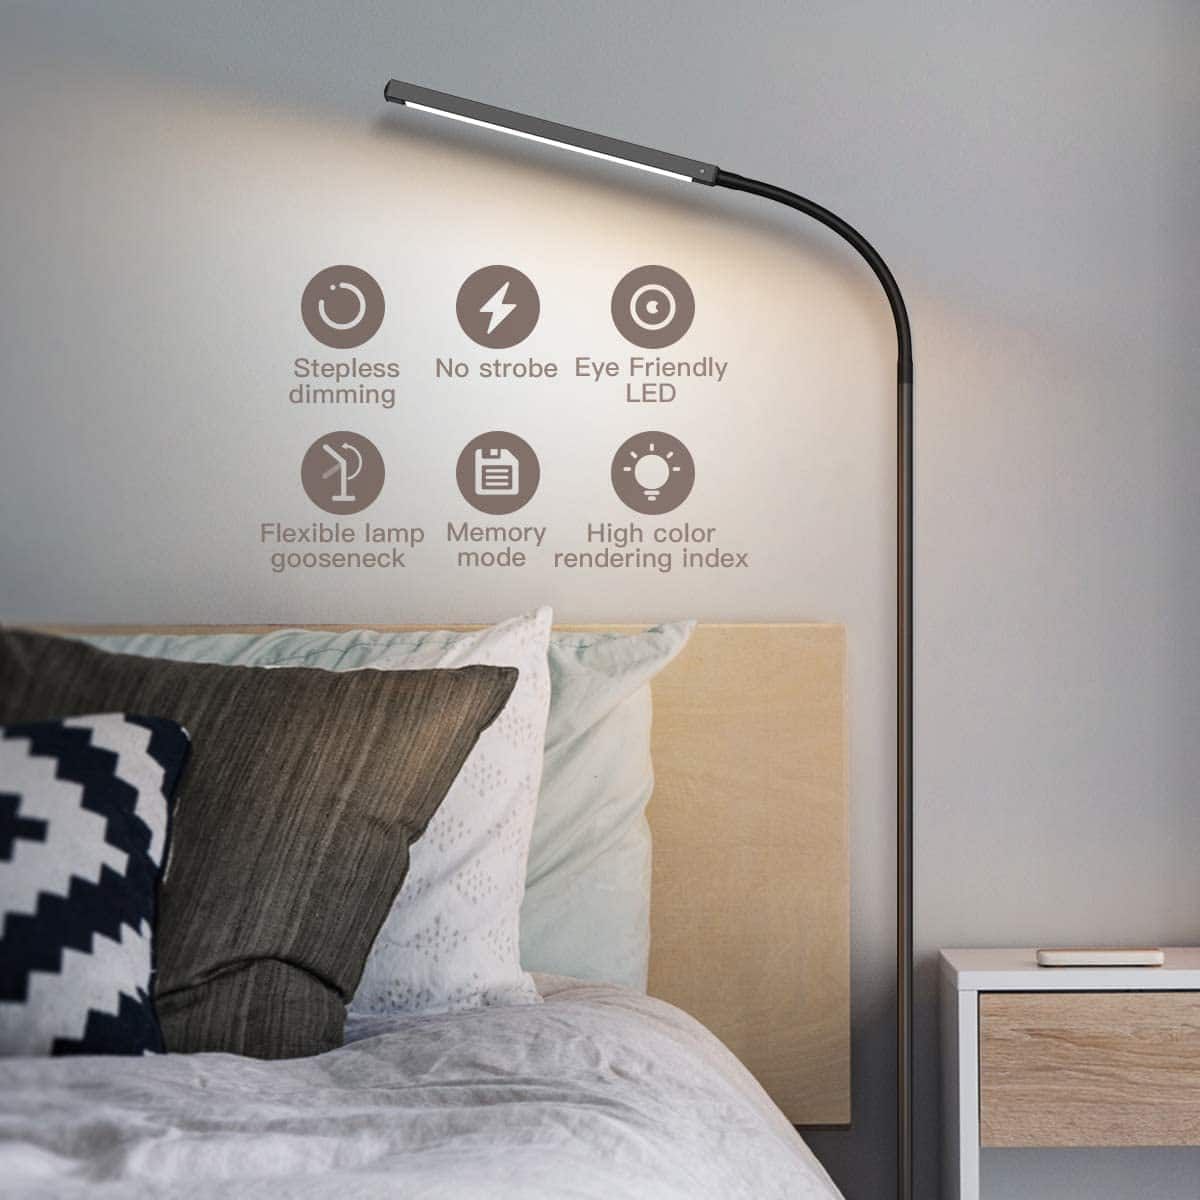 Dodocool 2-in-1 Multifunctional LED Floor Lamp $27.99 + Free Shipping